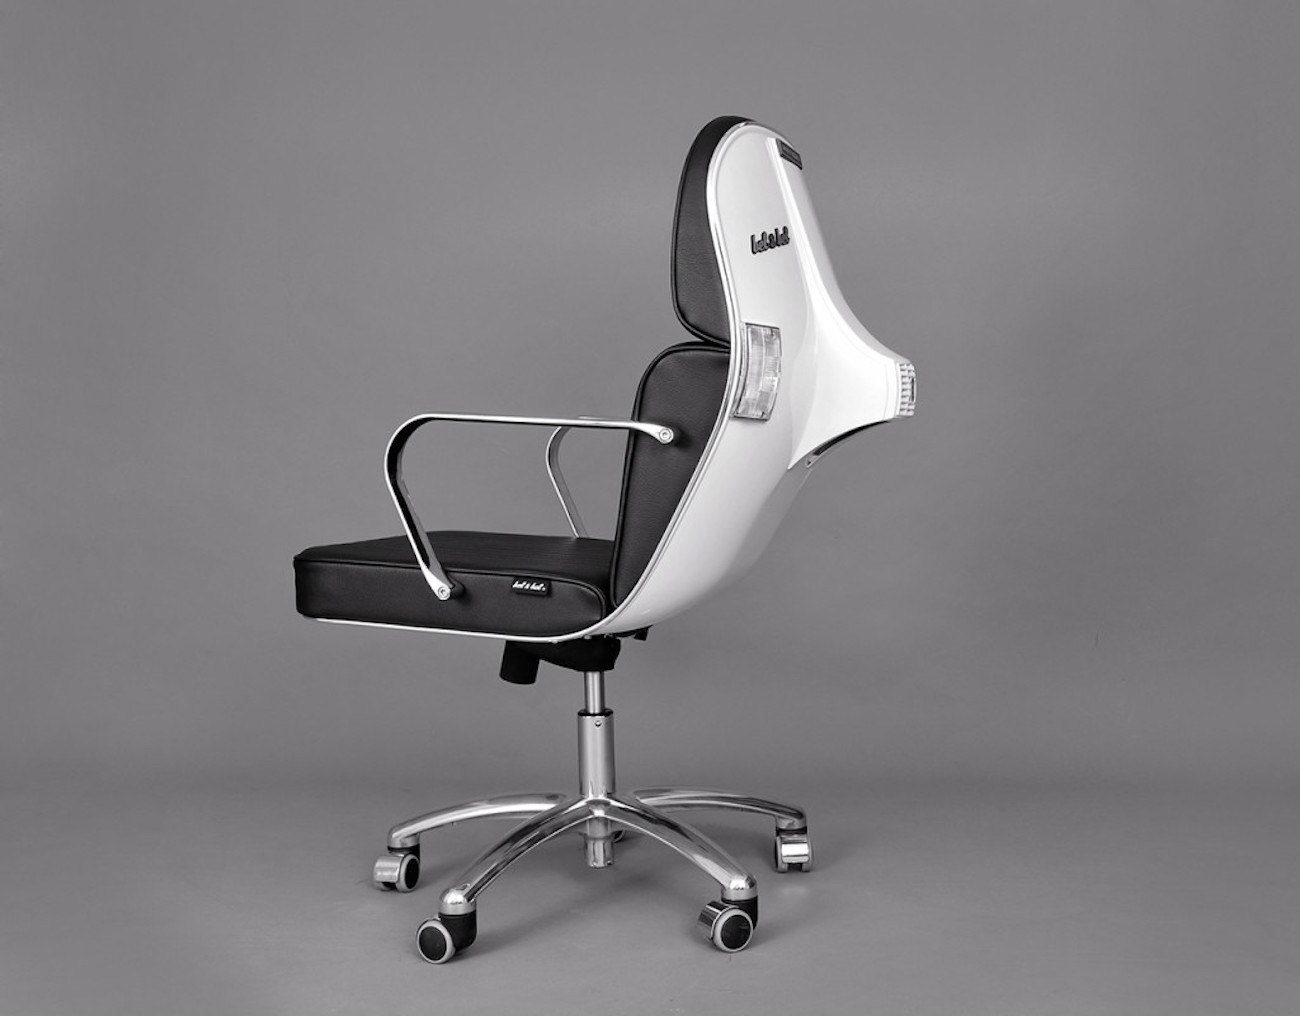 vespa-bv-12-chair-02